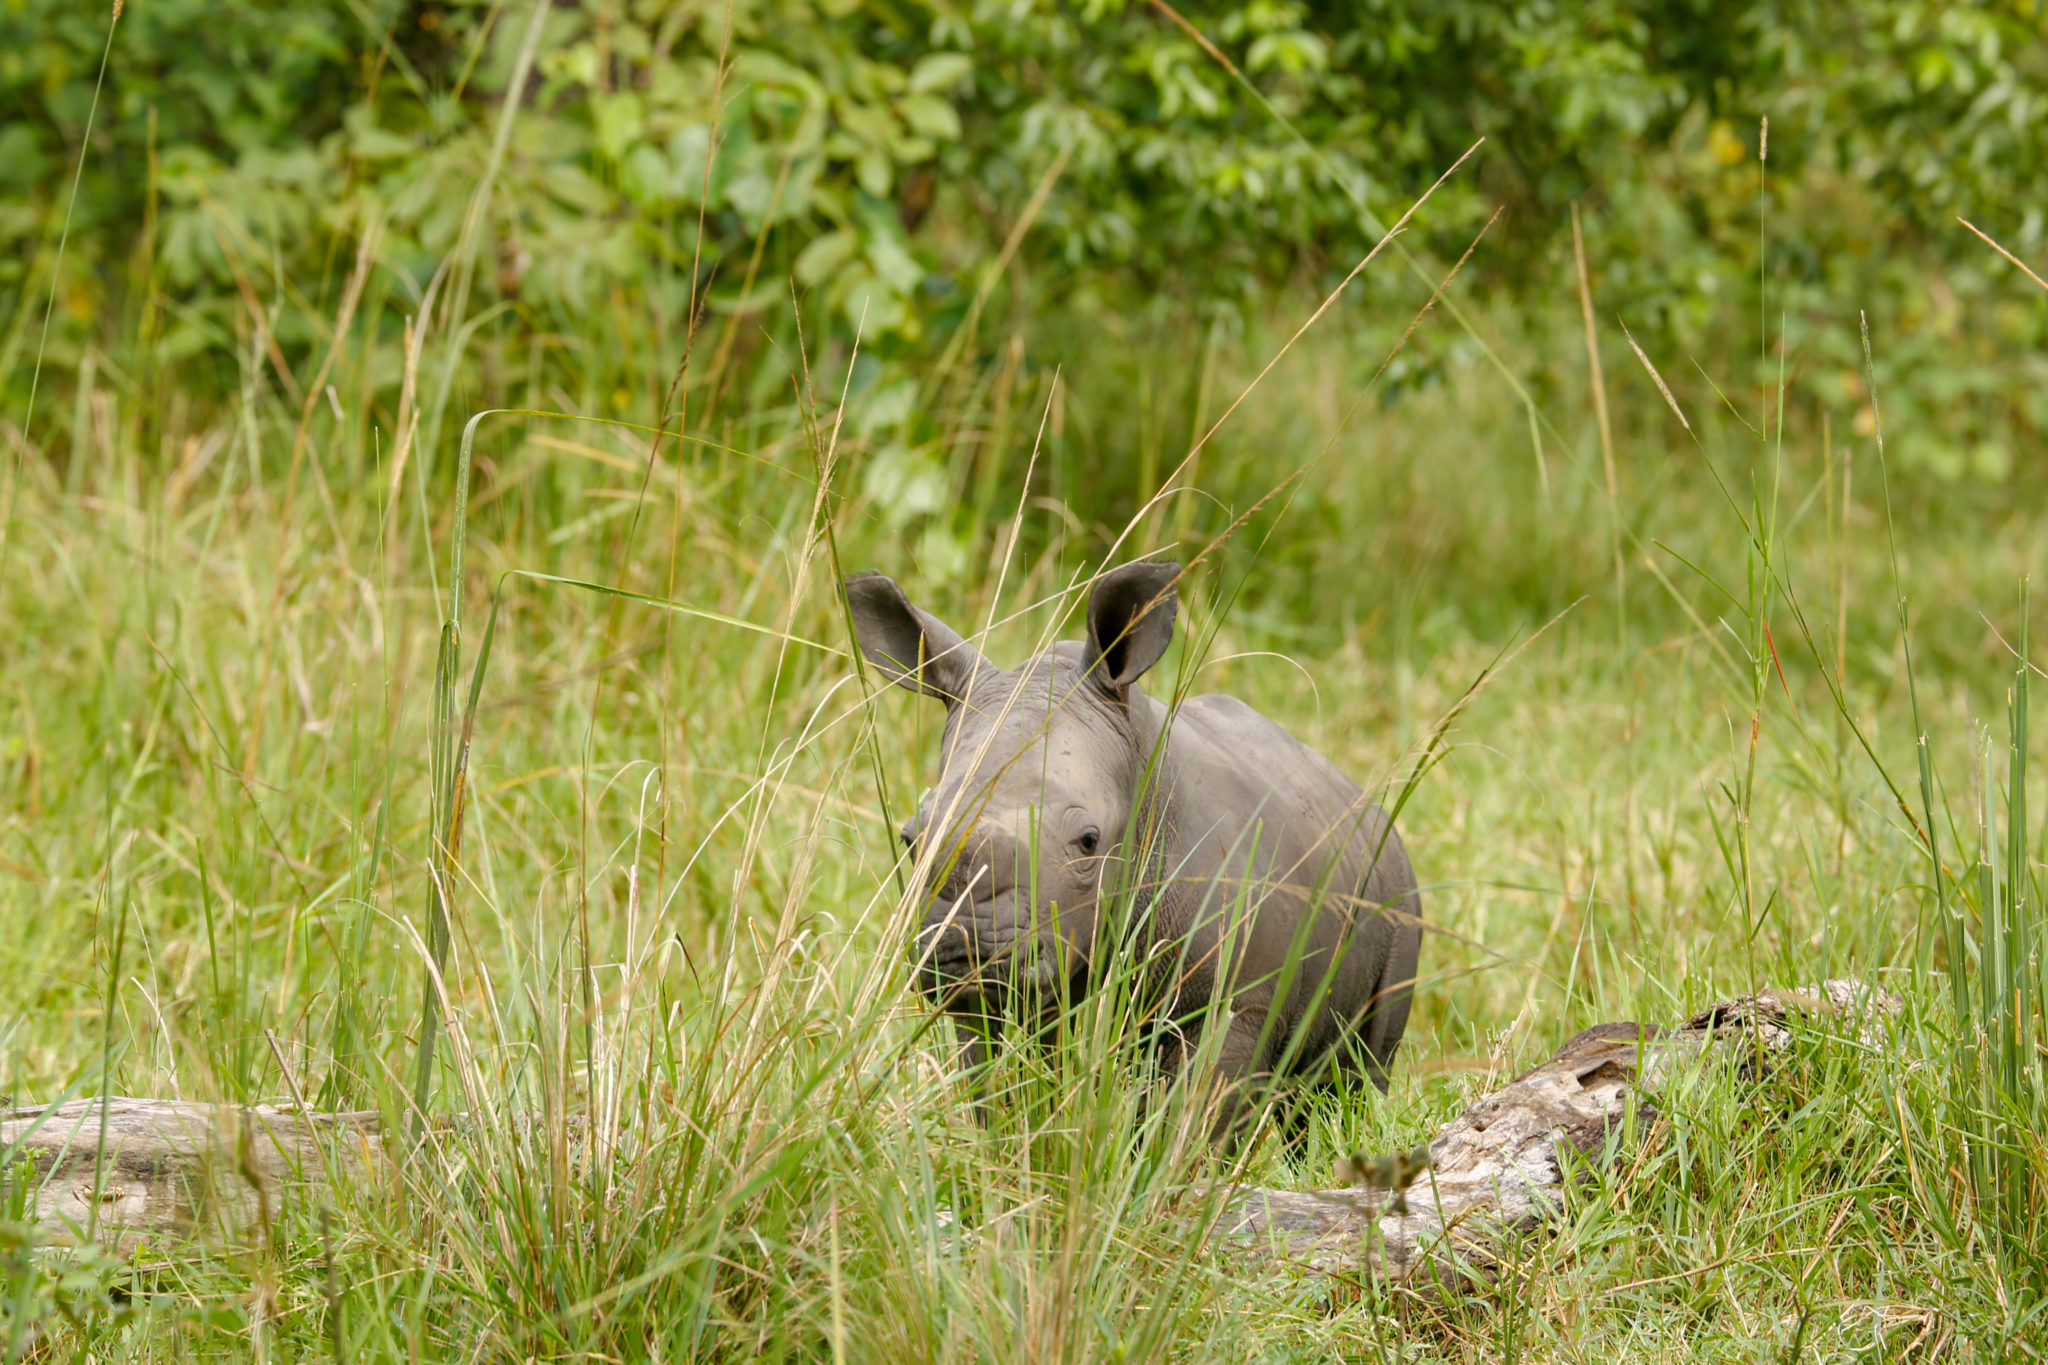 Top Things To Do in Uganda - Rhino Trekking at Ziwa Rhino Sanctuary